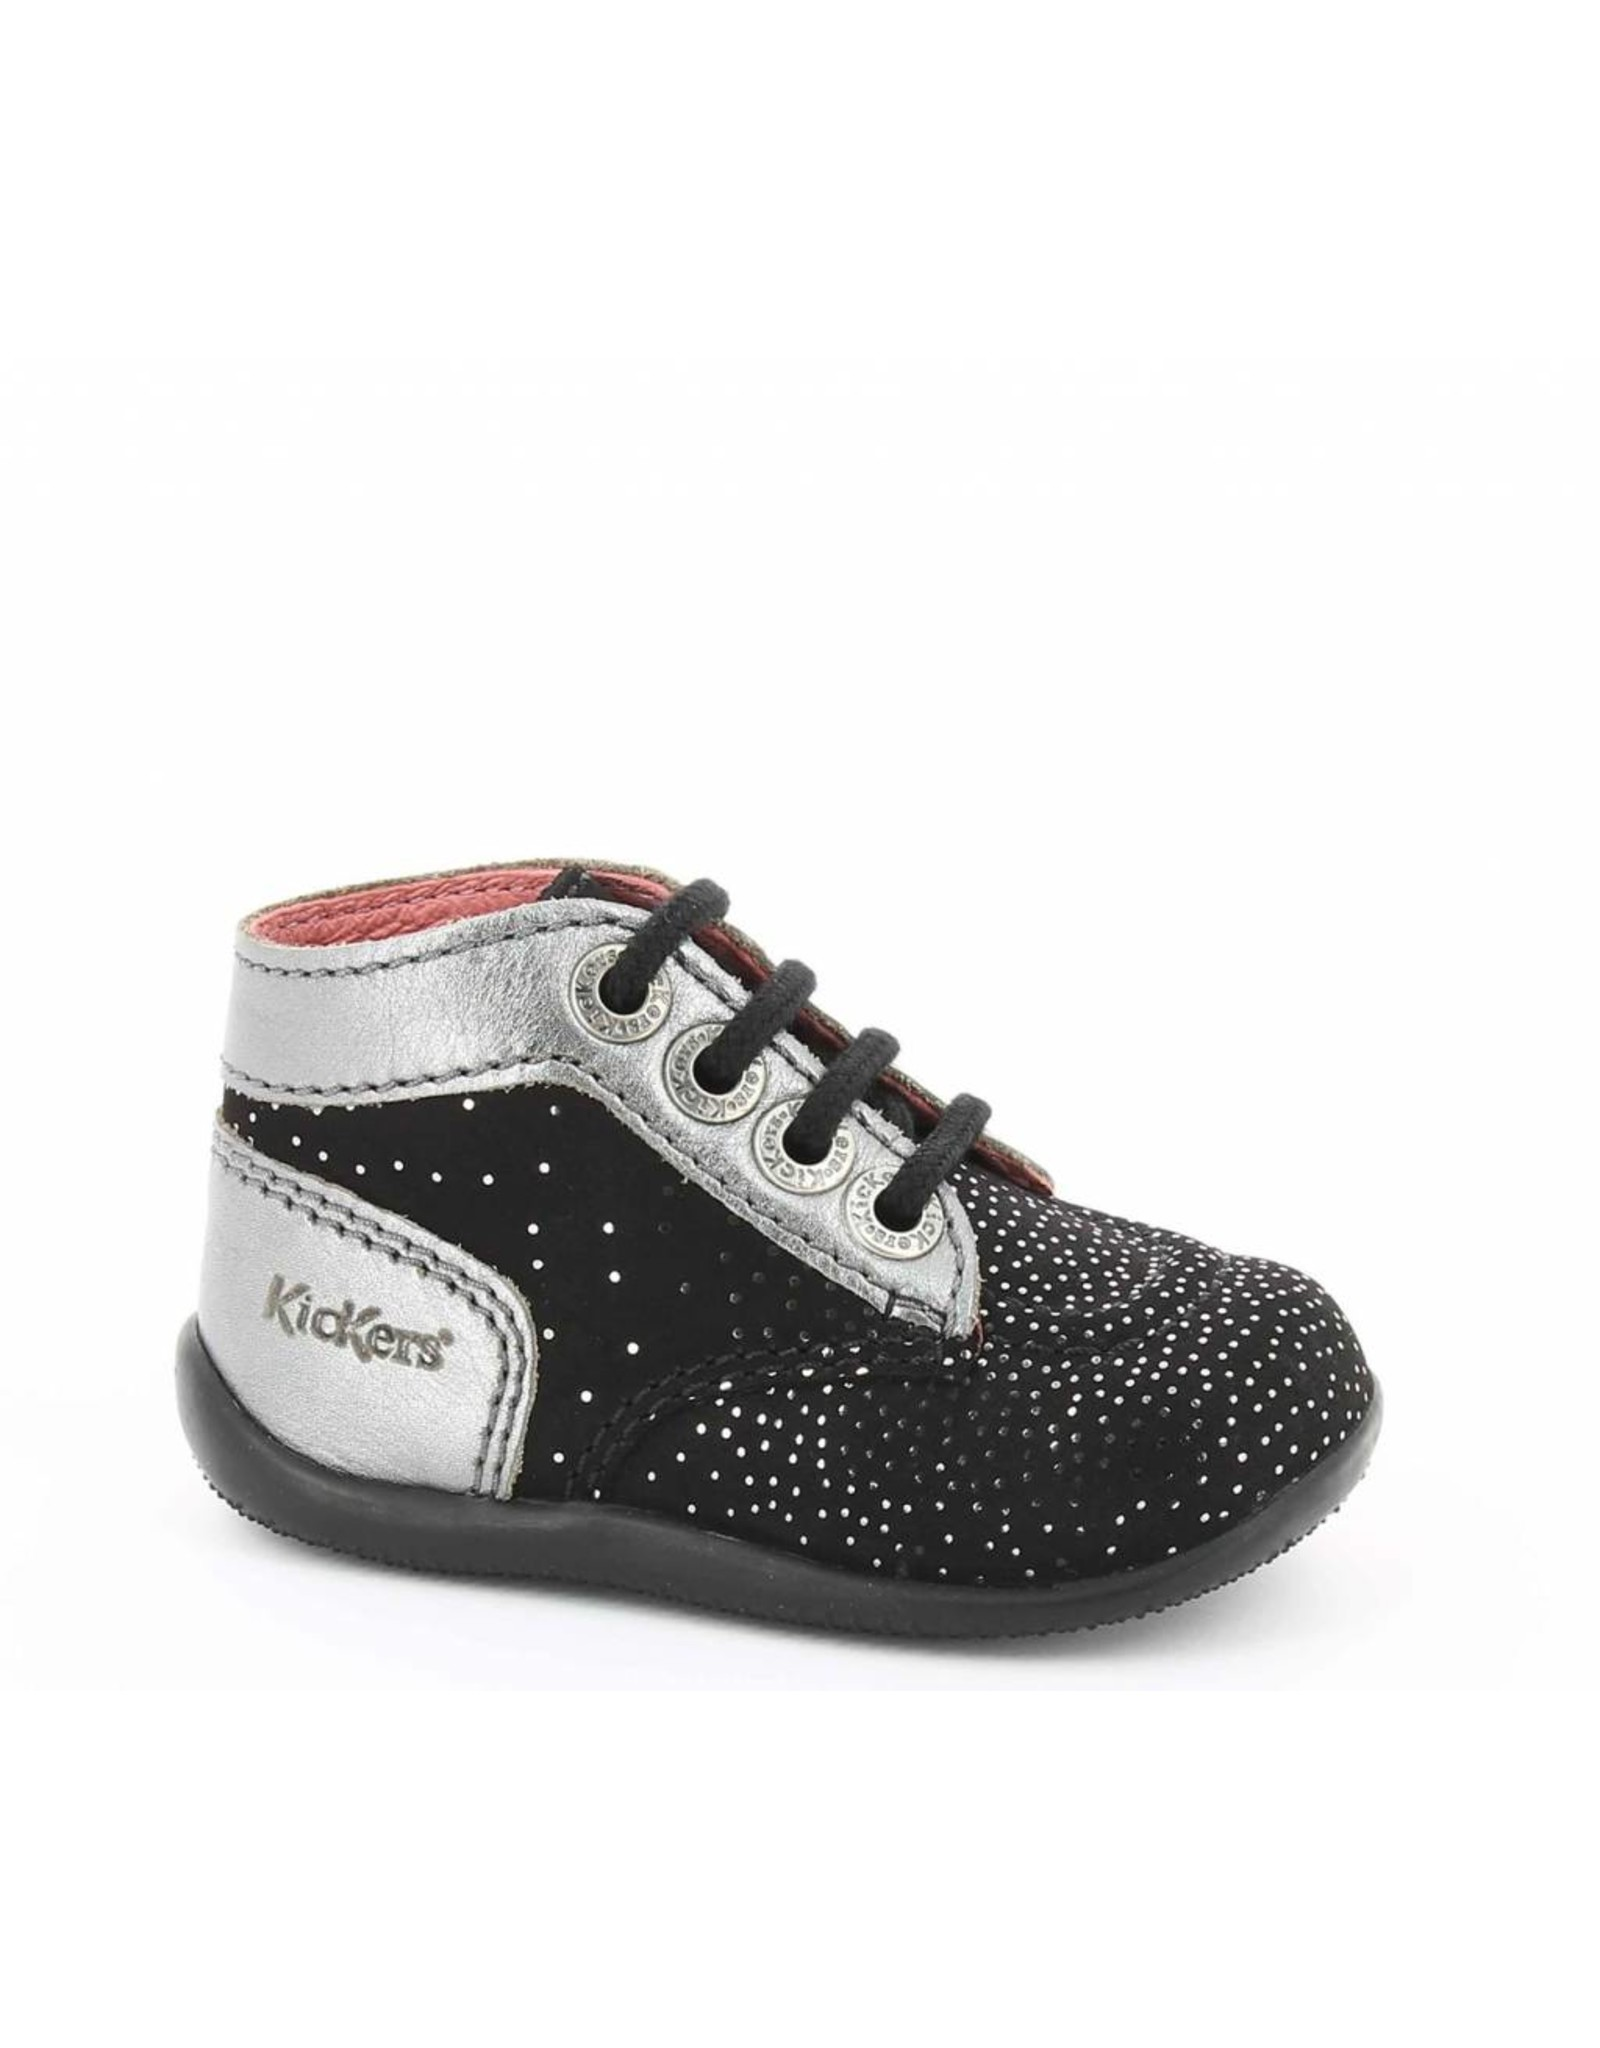 KICKERS BONBON NOIR METALLIQUE KR3NM 18H446826-10